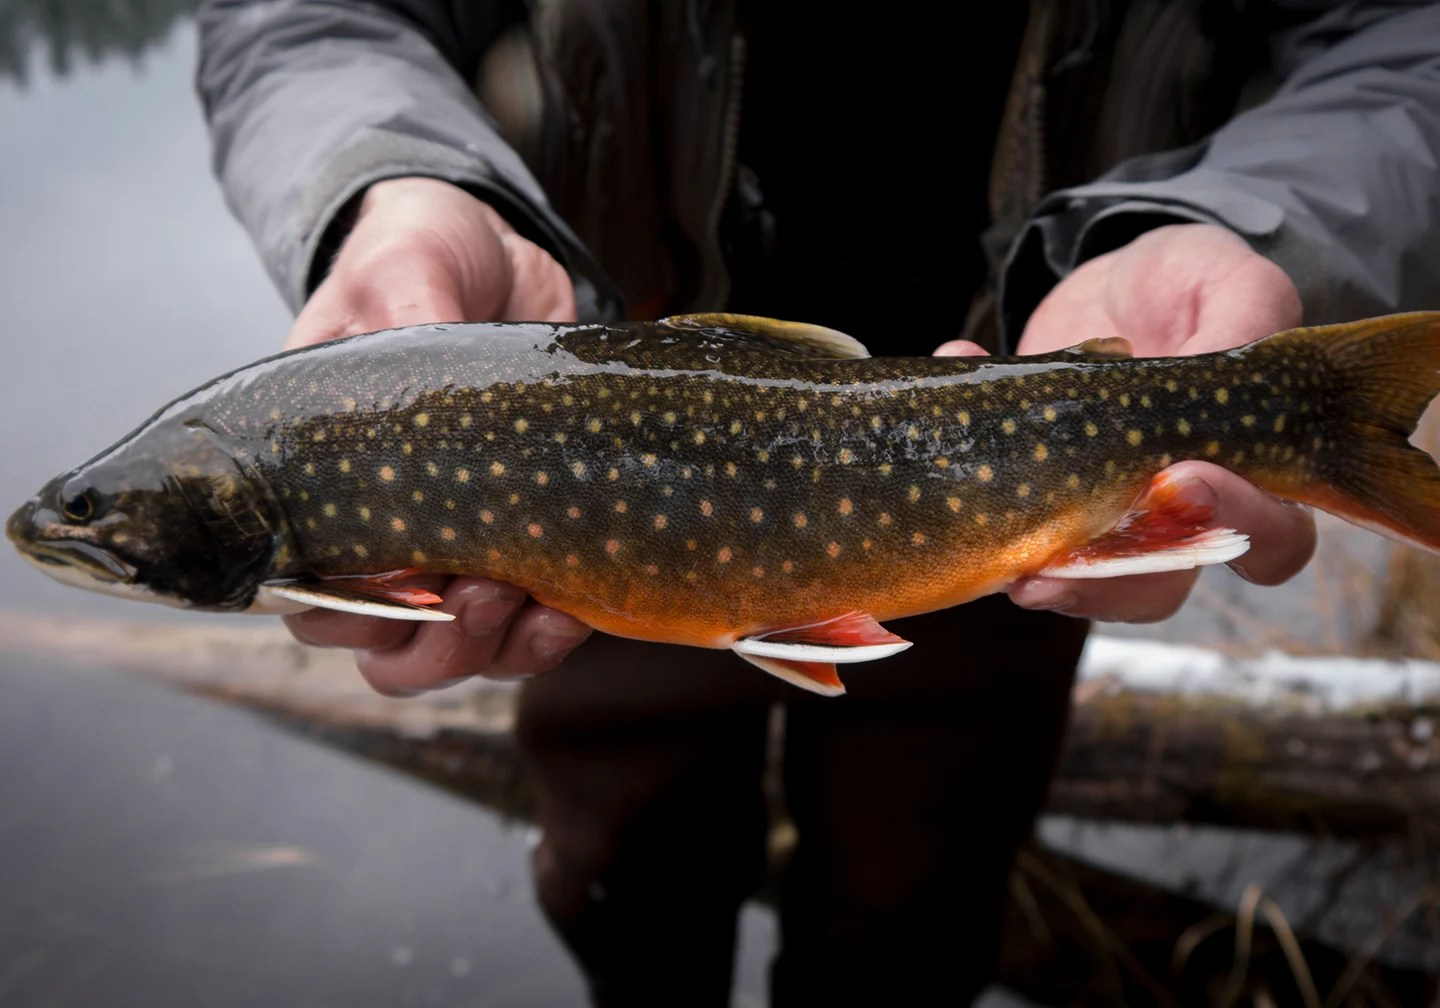 A close-up of an angler holding a Splake. Splake are a cross-breed of two North American Trout species: Brook Trout and Lake Trout.